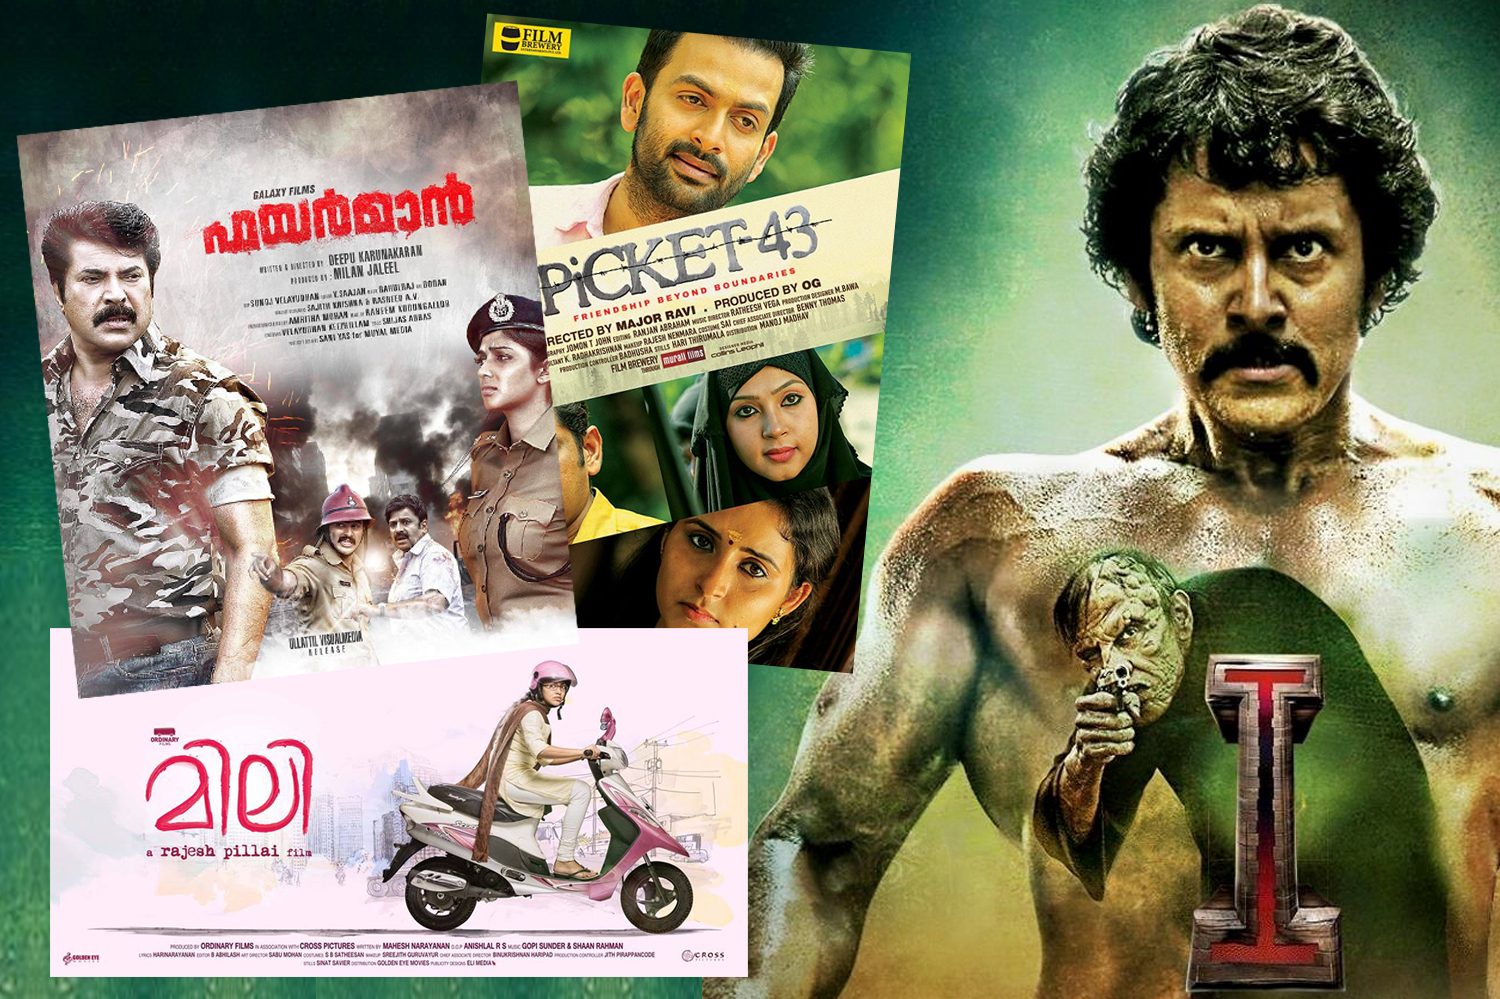 Mollywood still have to wait for Fireman and Mili-I-Vikram-Mammootty-Prithviraj-Dileep-Fireman-Picket 43-Mili-Onlookers Media